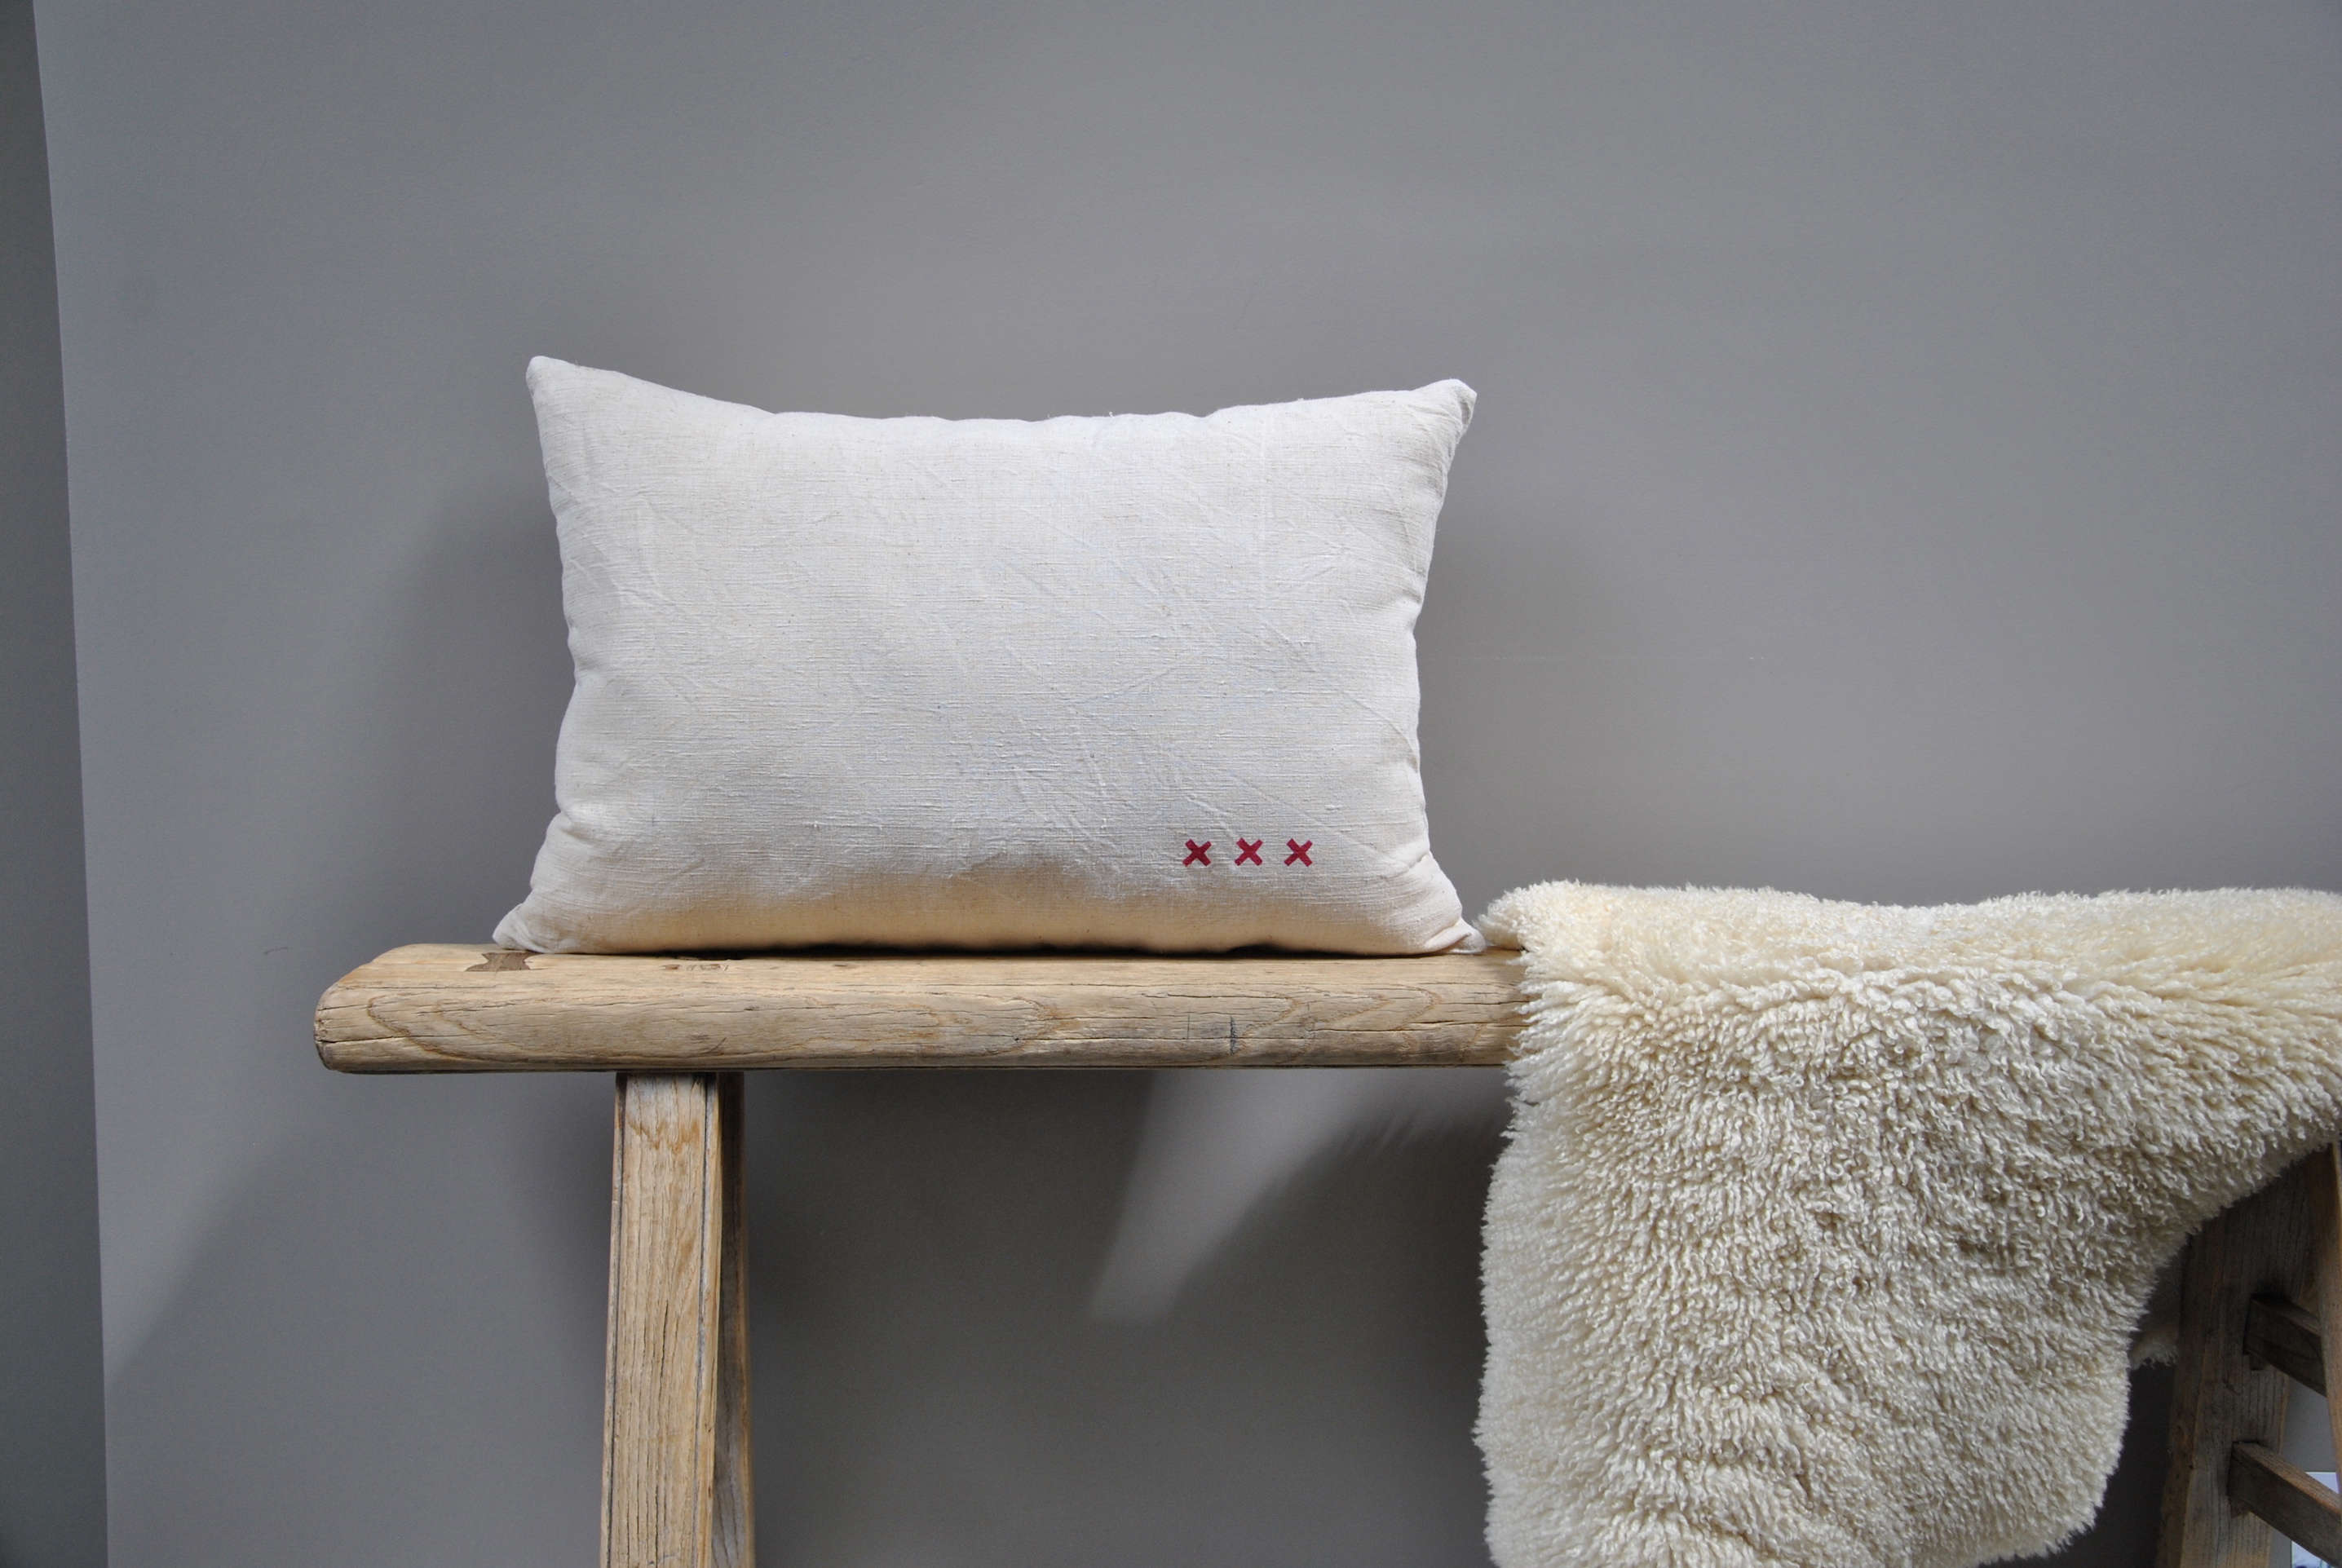 Pillow of vintage linen with X-stamp decoration from Le Reperes des Belettes | Remodelista